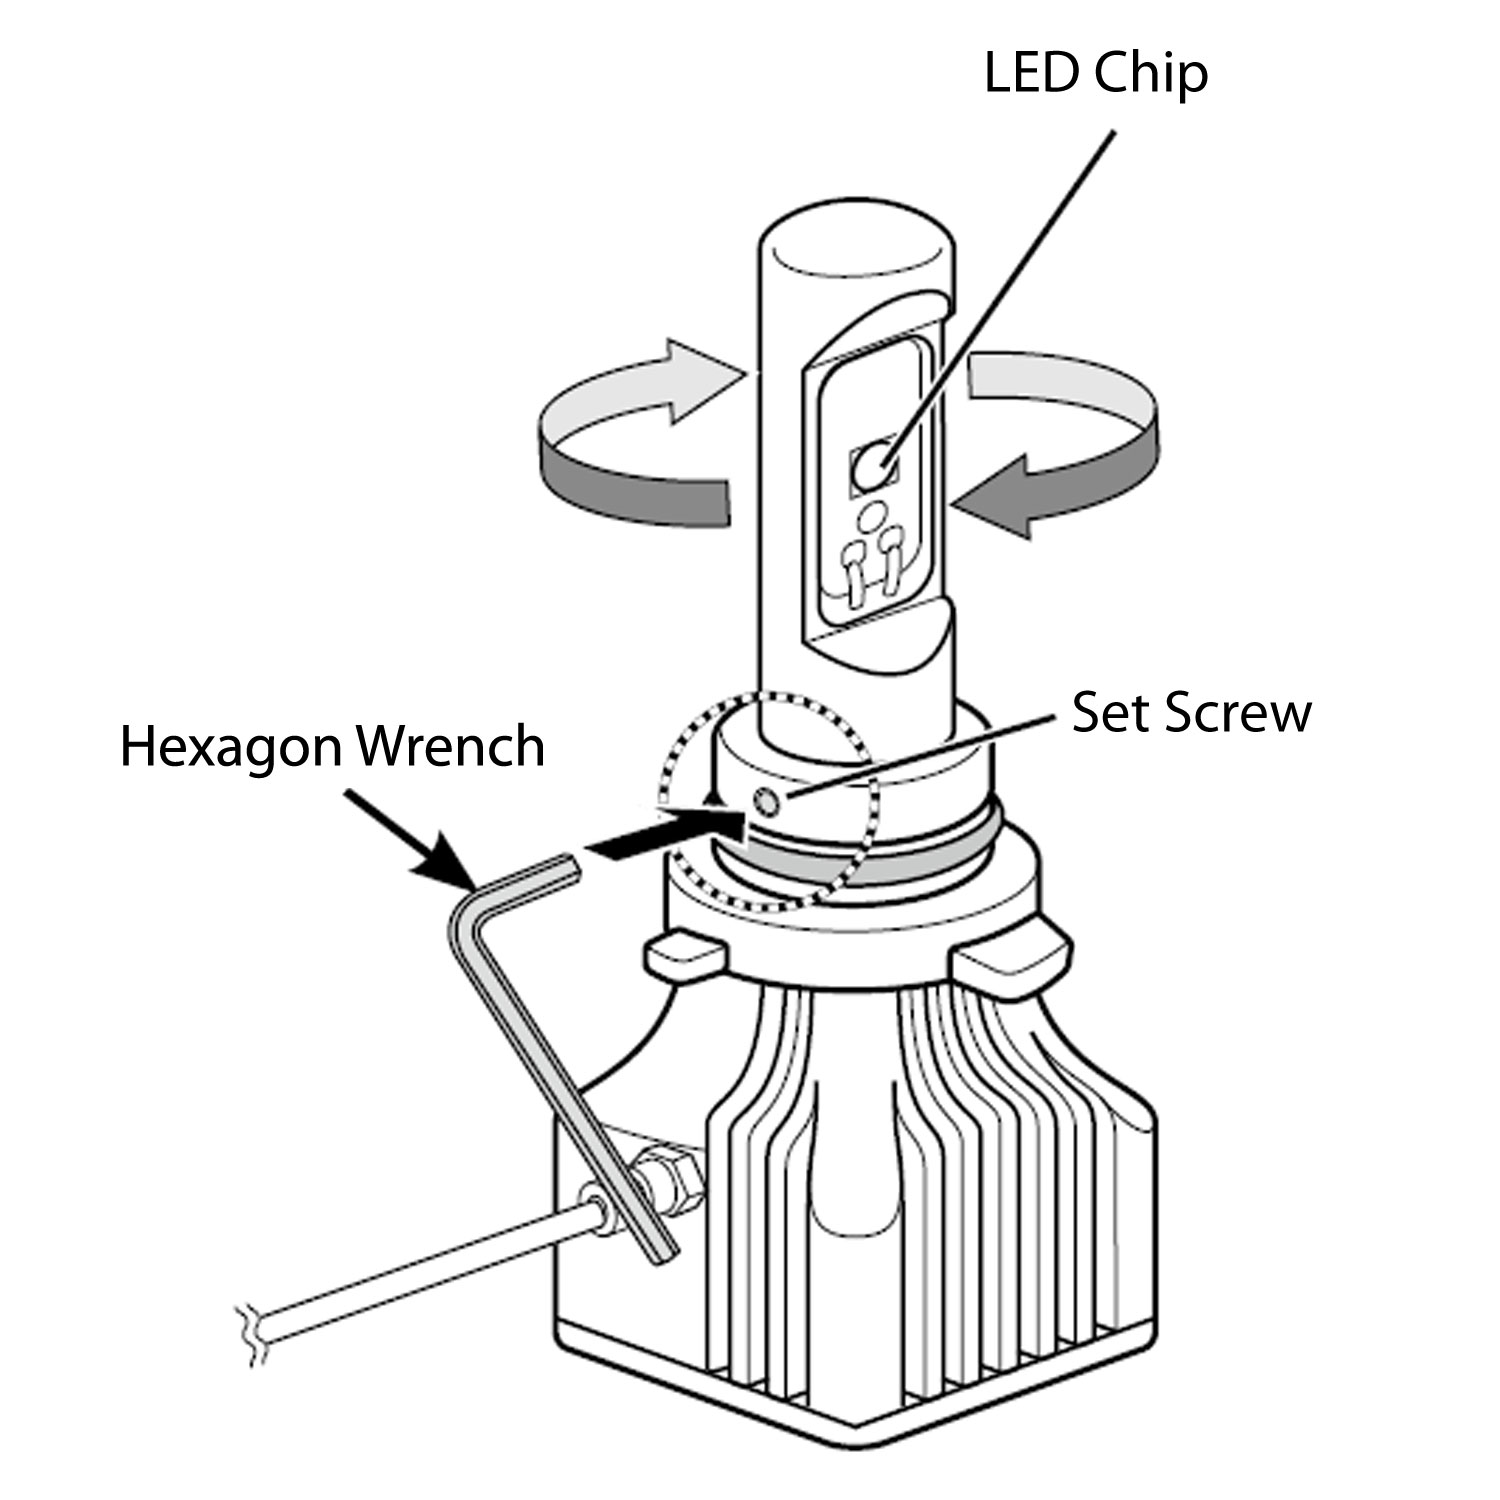 17201 led bulb set screw?bwd10006wd10006bhd10006hd1000?qualityd806stripdall emg hz pickups wiring diagram efcaviation com emg solderless wiring diagram at soozxer.org